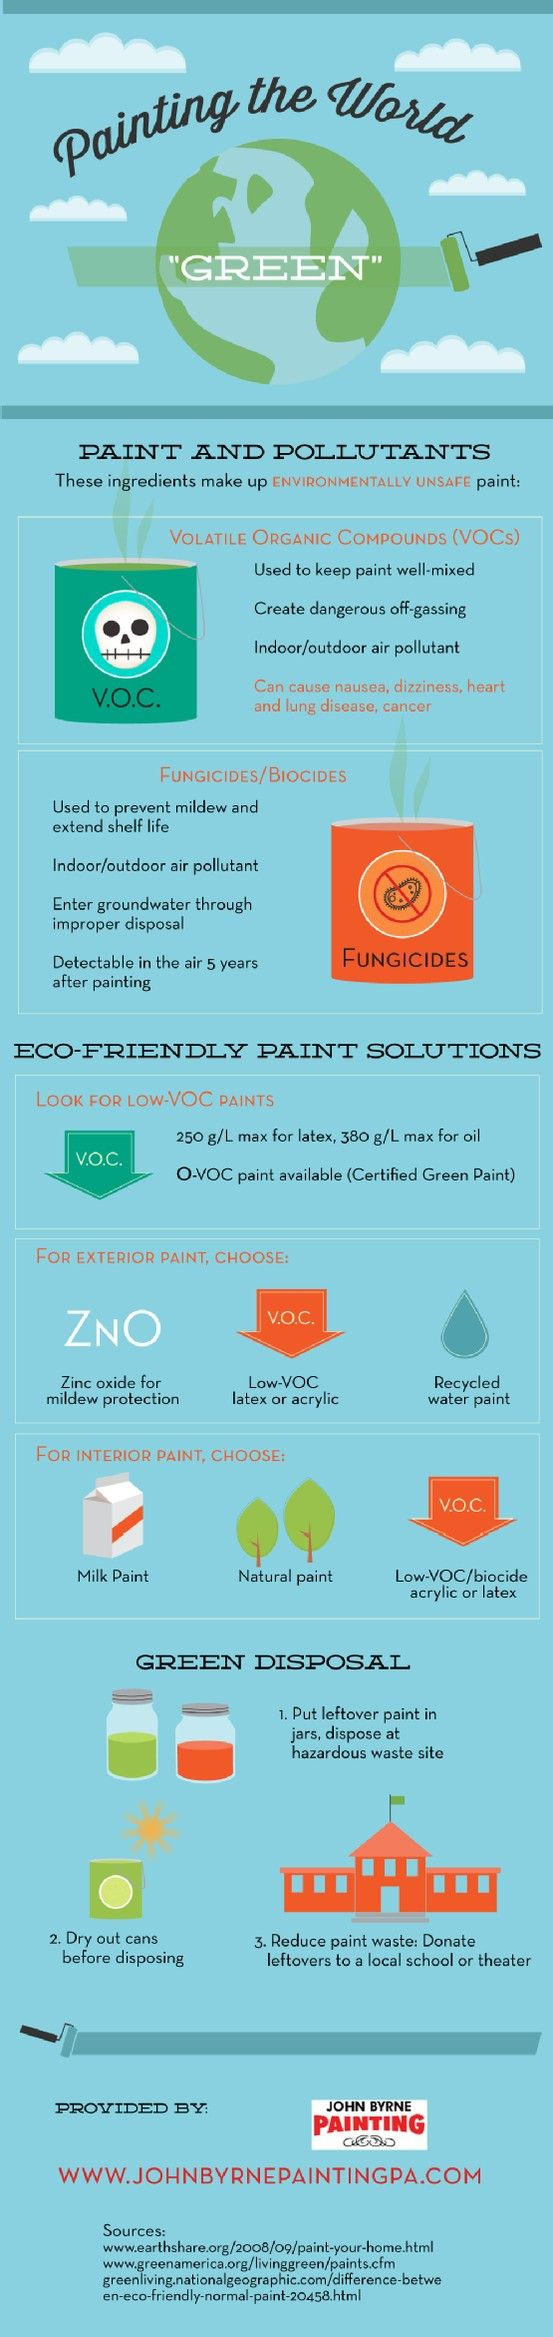 Low-VOC paints are an eco-friendly option for painting needs. Check out this infographic from a commercial painting company in Main Line to learn about green paint options for interior and exterior needs.